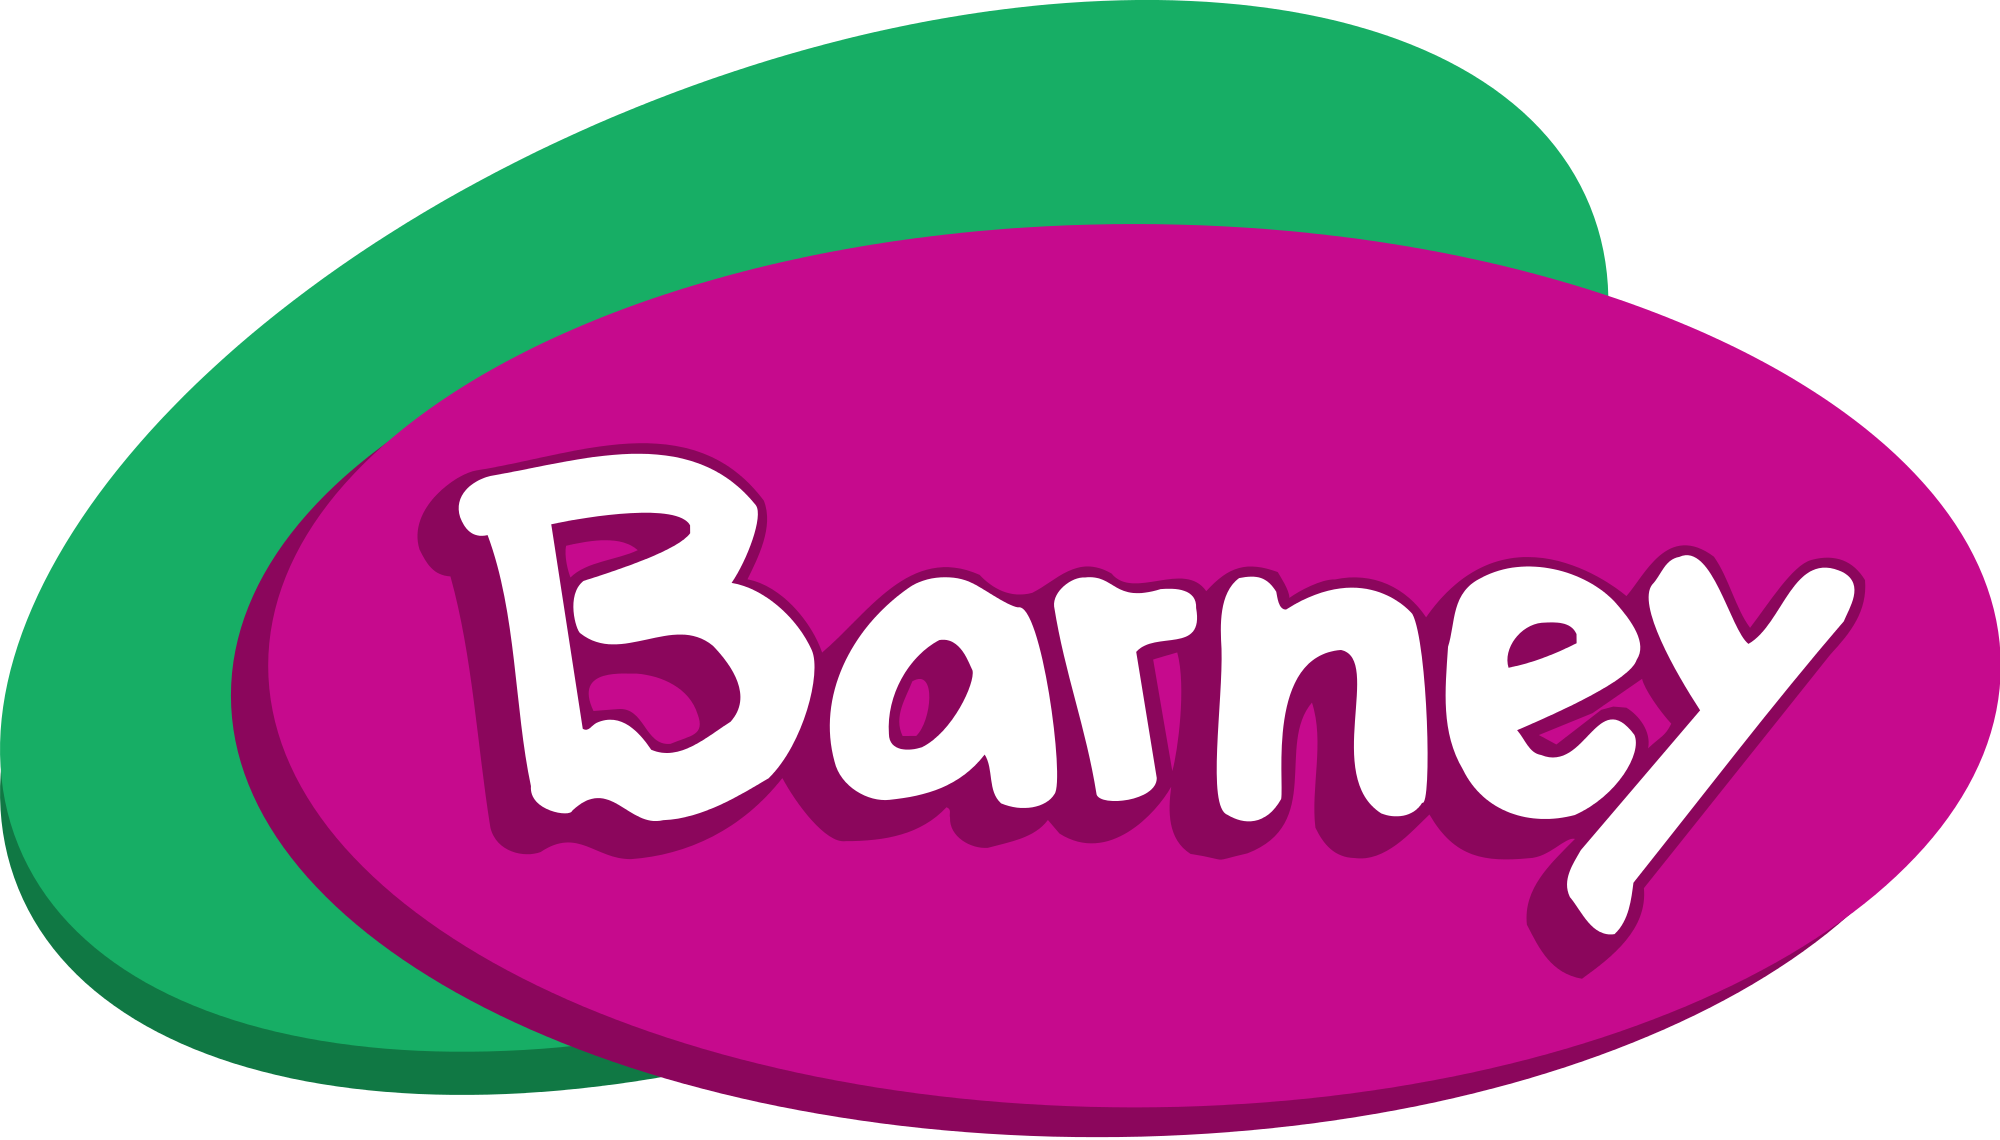 Barney transparent pink. File friends logo svg